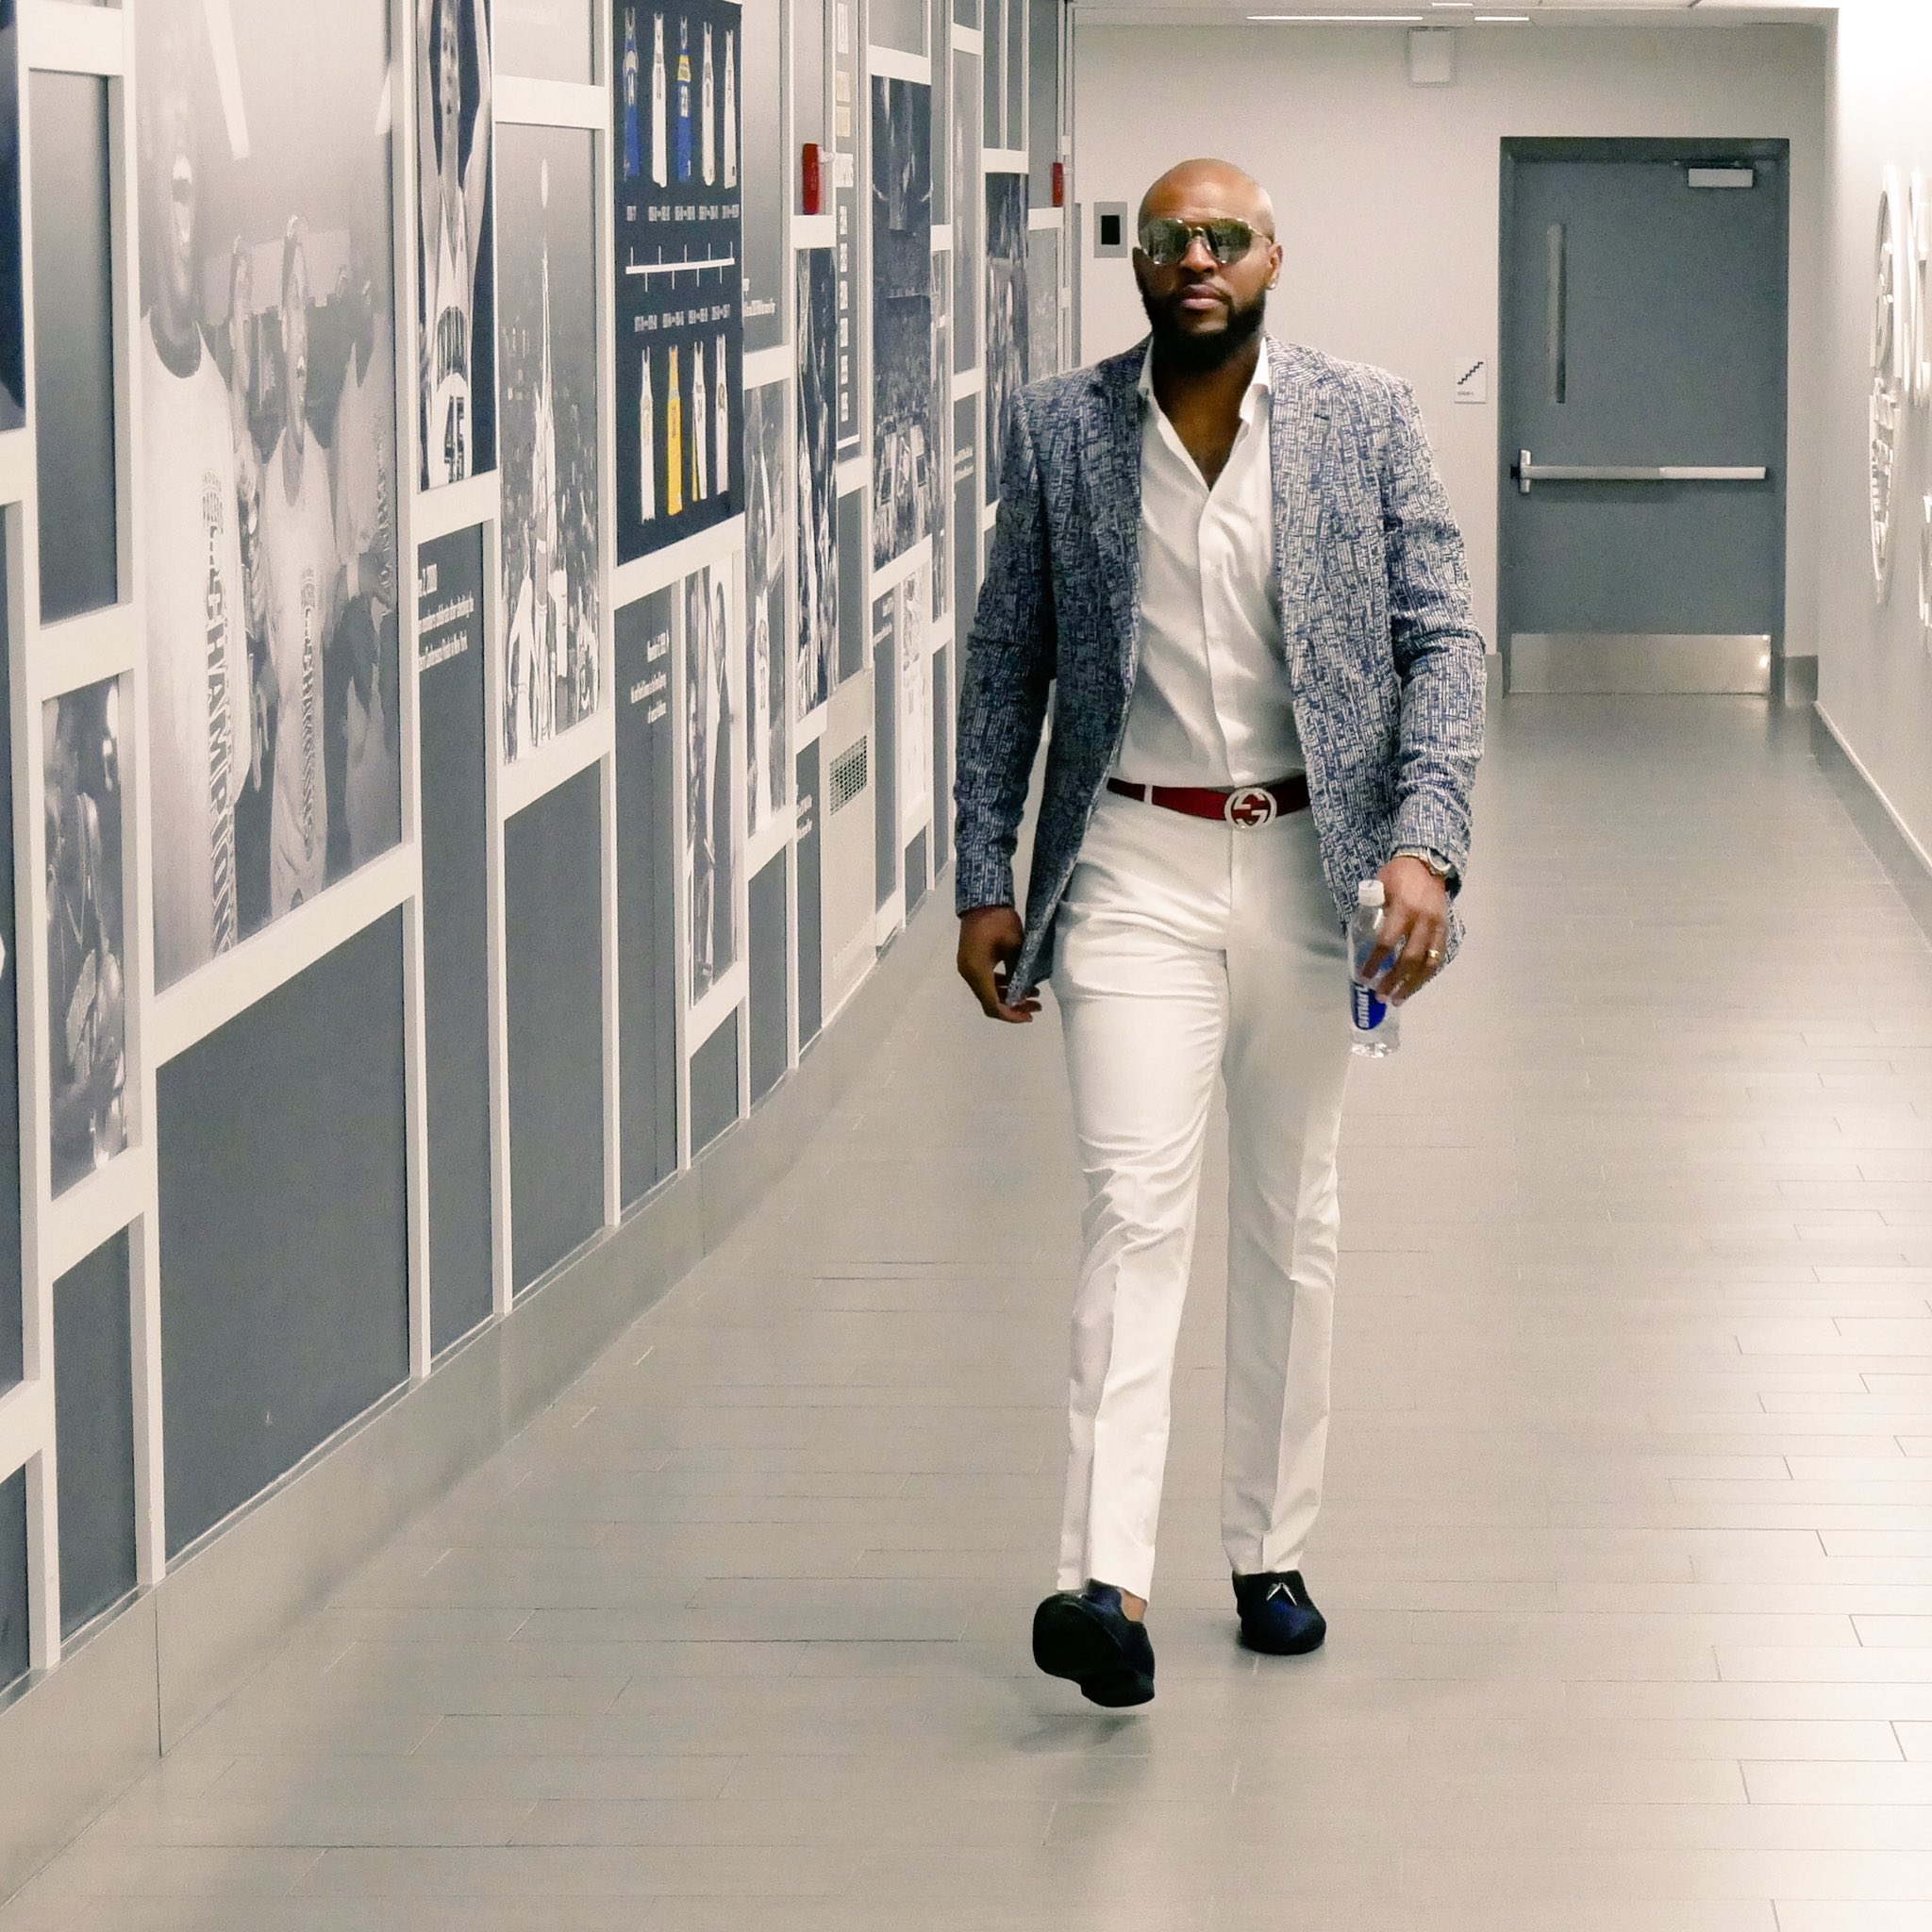 Arriving for Game 6 in style. https://t.co/26eISEkzgx